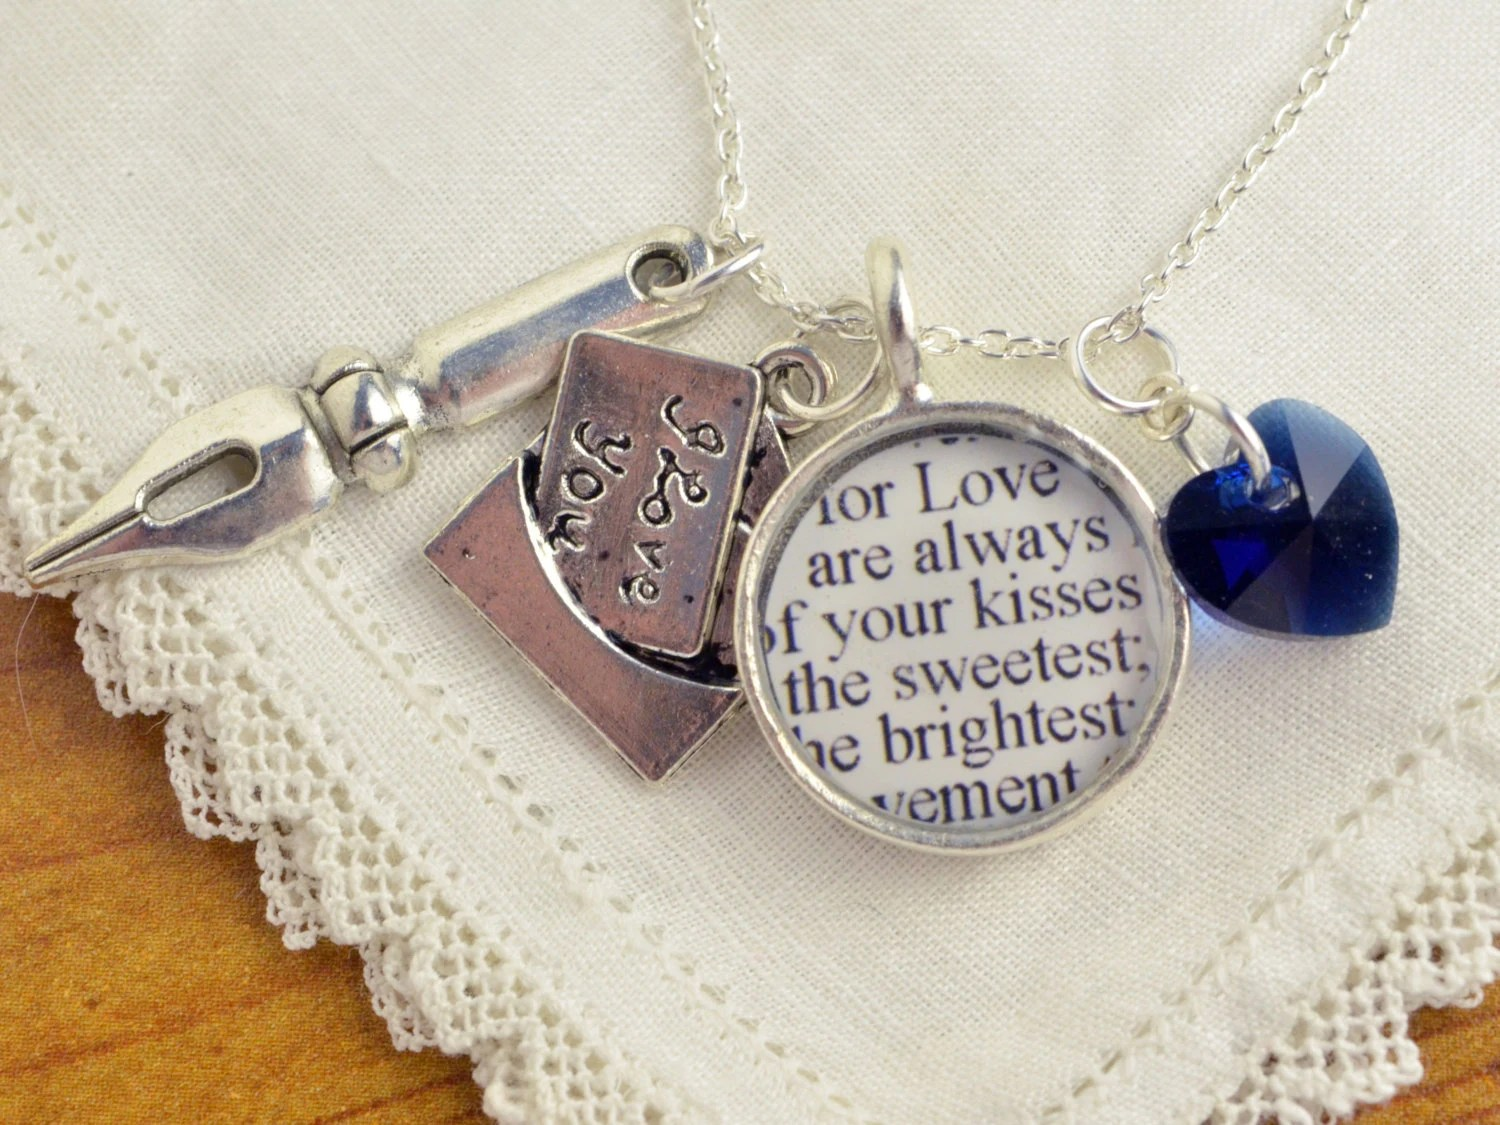 John Keats Love Letter Charm Necklace - Love Letters by Poets and Writers - Romantic Jewelry